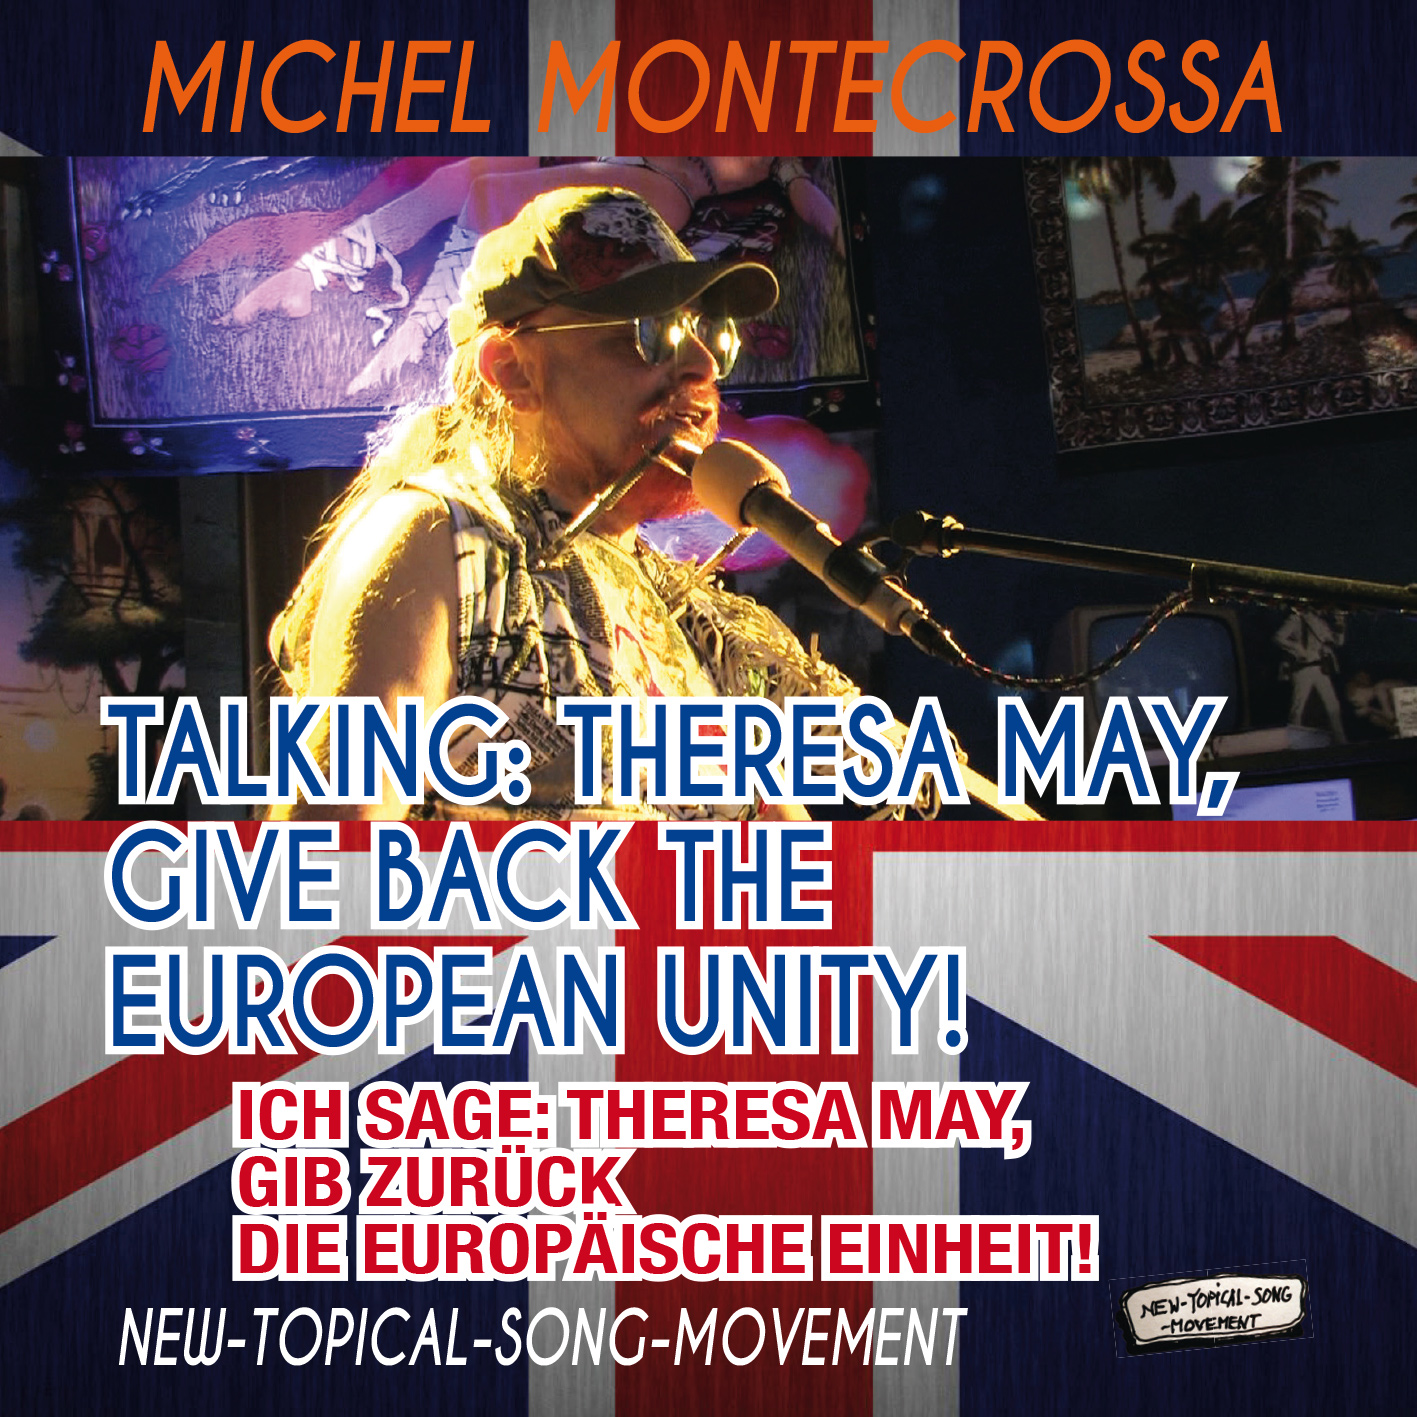 Talking: Theresa May, Give Back The European Unity! - Ich Sage: Theresa May, Gib Zurück Die Europäische Einheit!